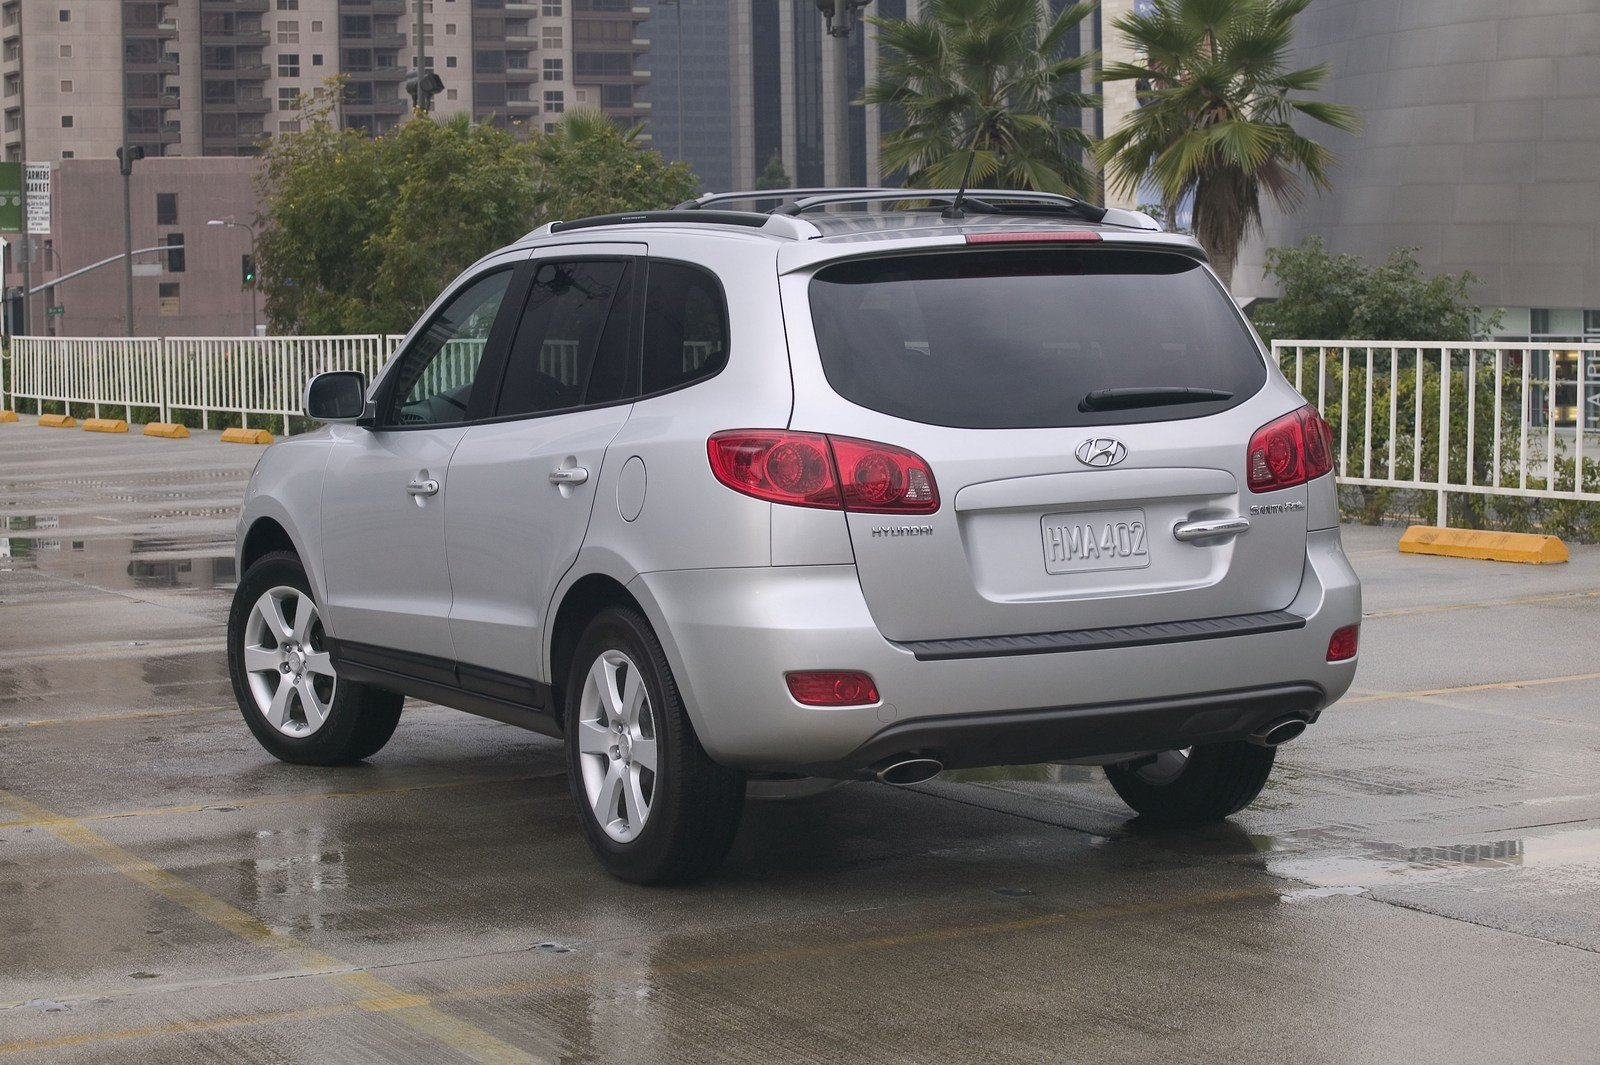 2007 hyundai santa fe picture 43618 car review top speed. Black Bedroom Furniture Sets. Home Design Ideas